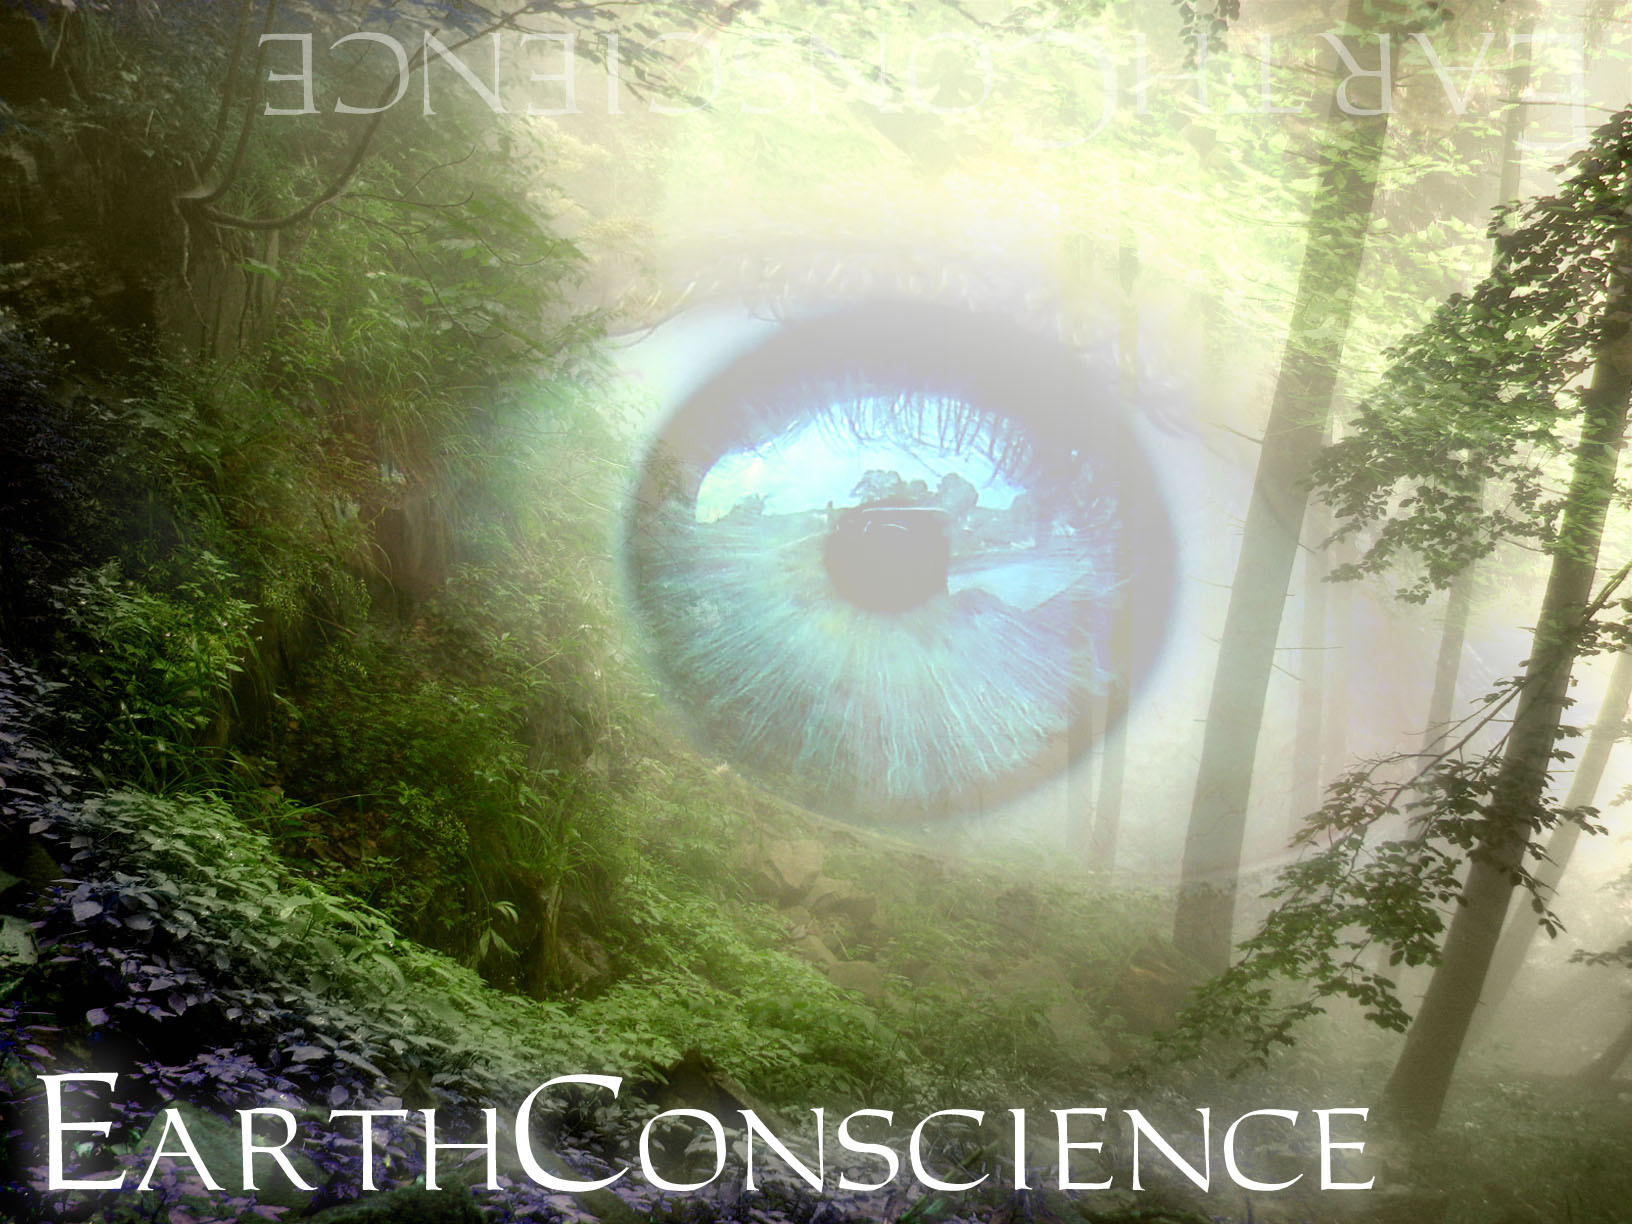 Earth Conscience